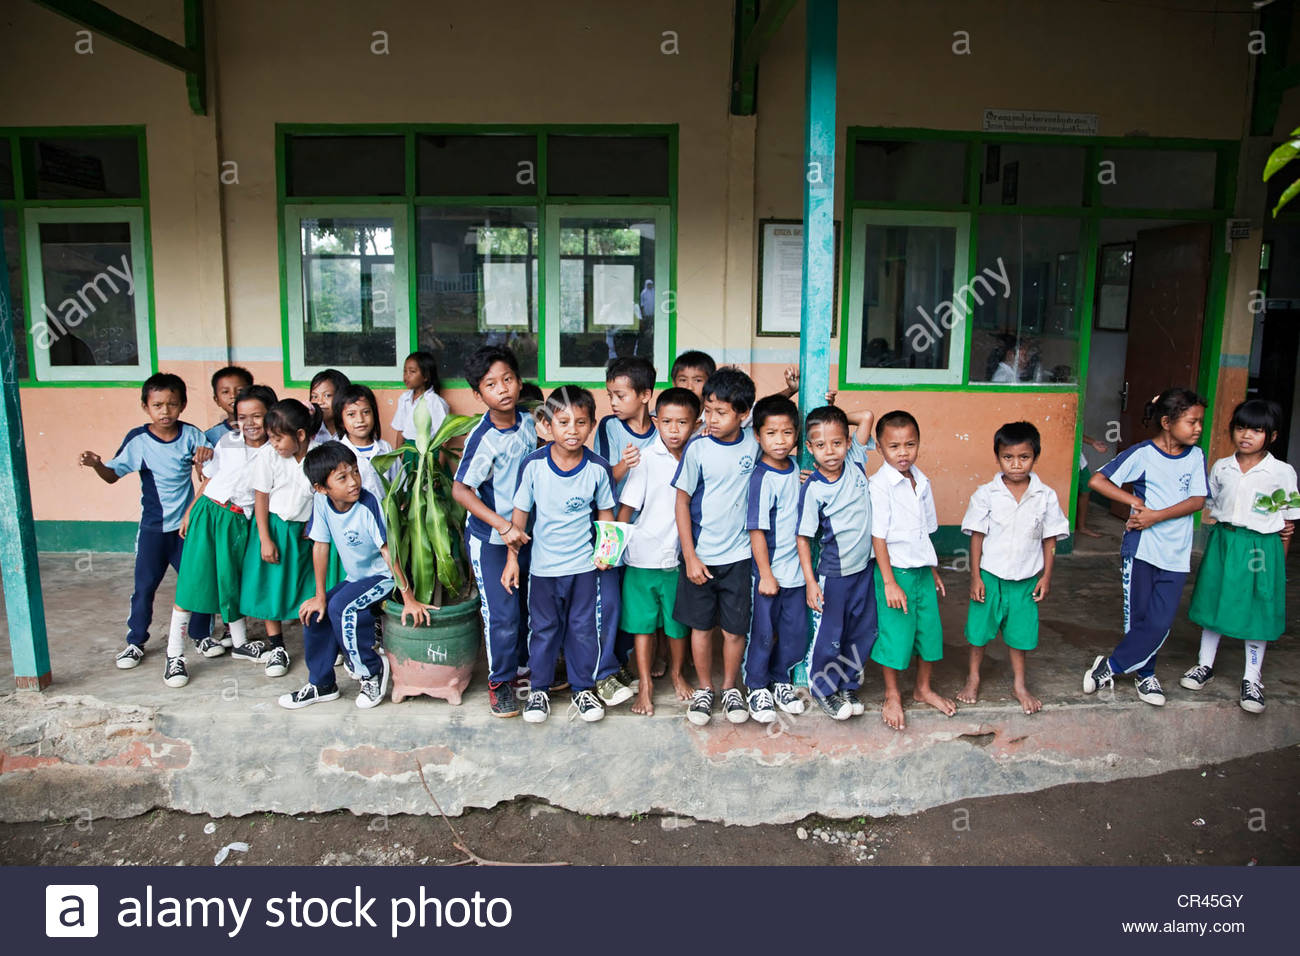 School children, developing country, Lombok, Indonesia, Southeast Asia - Stock Image